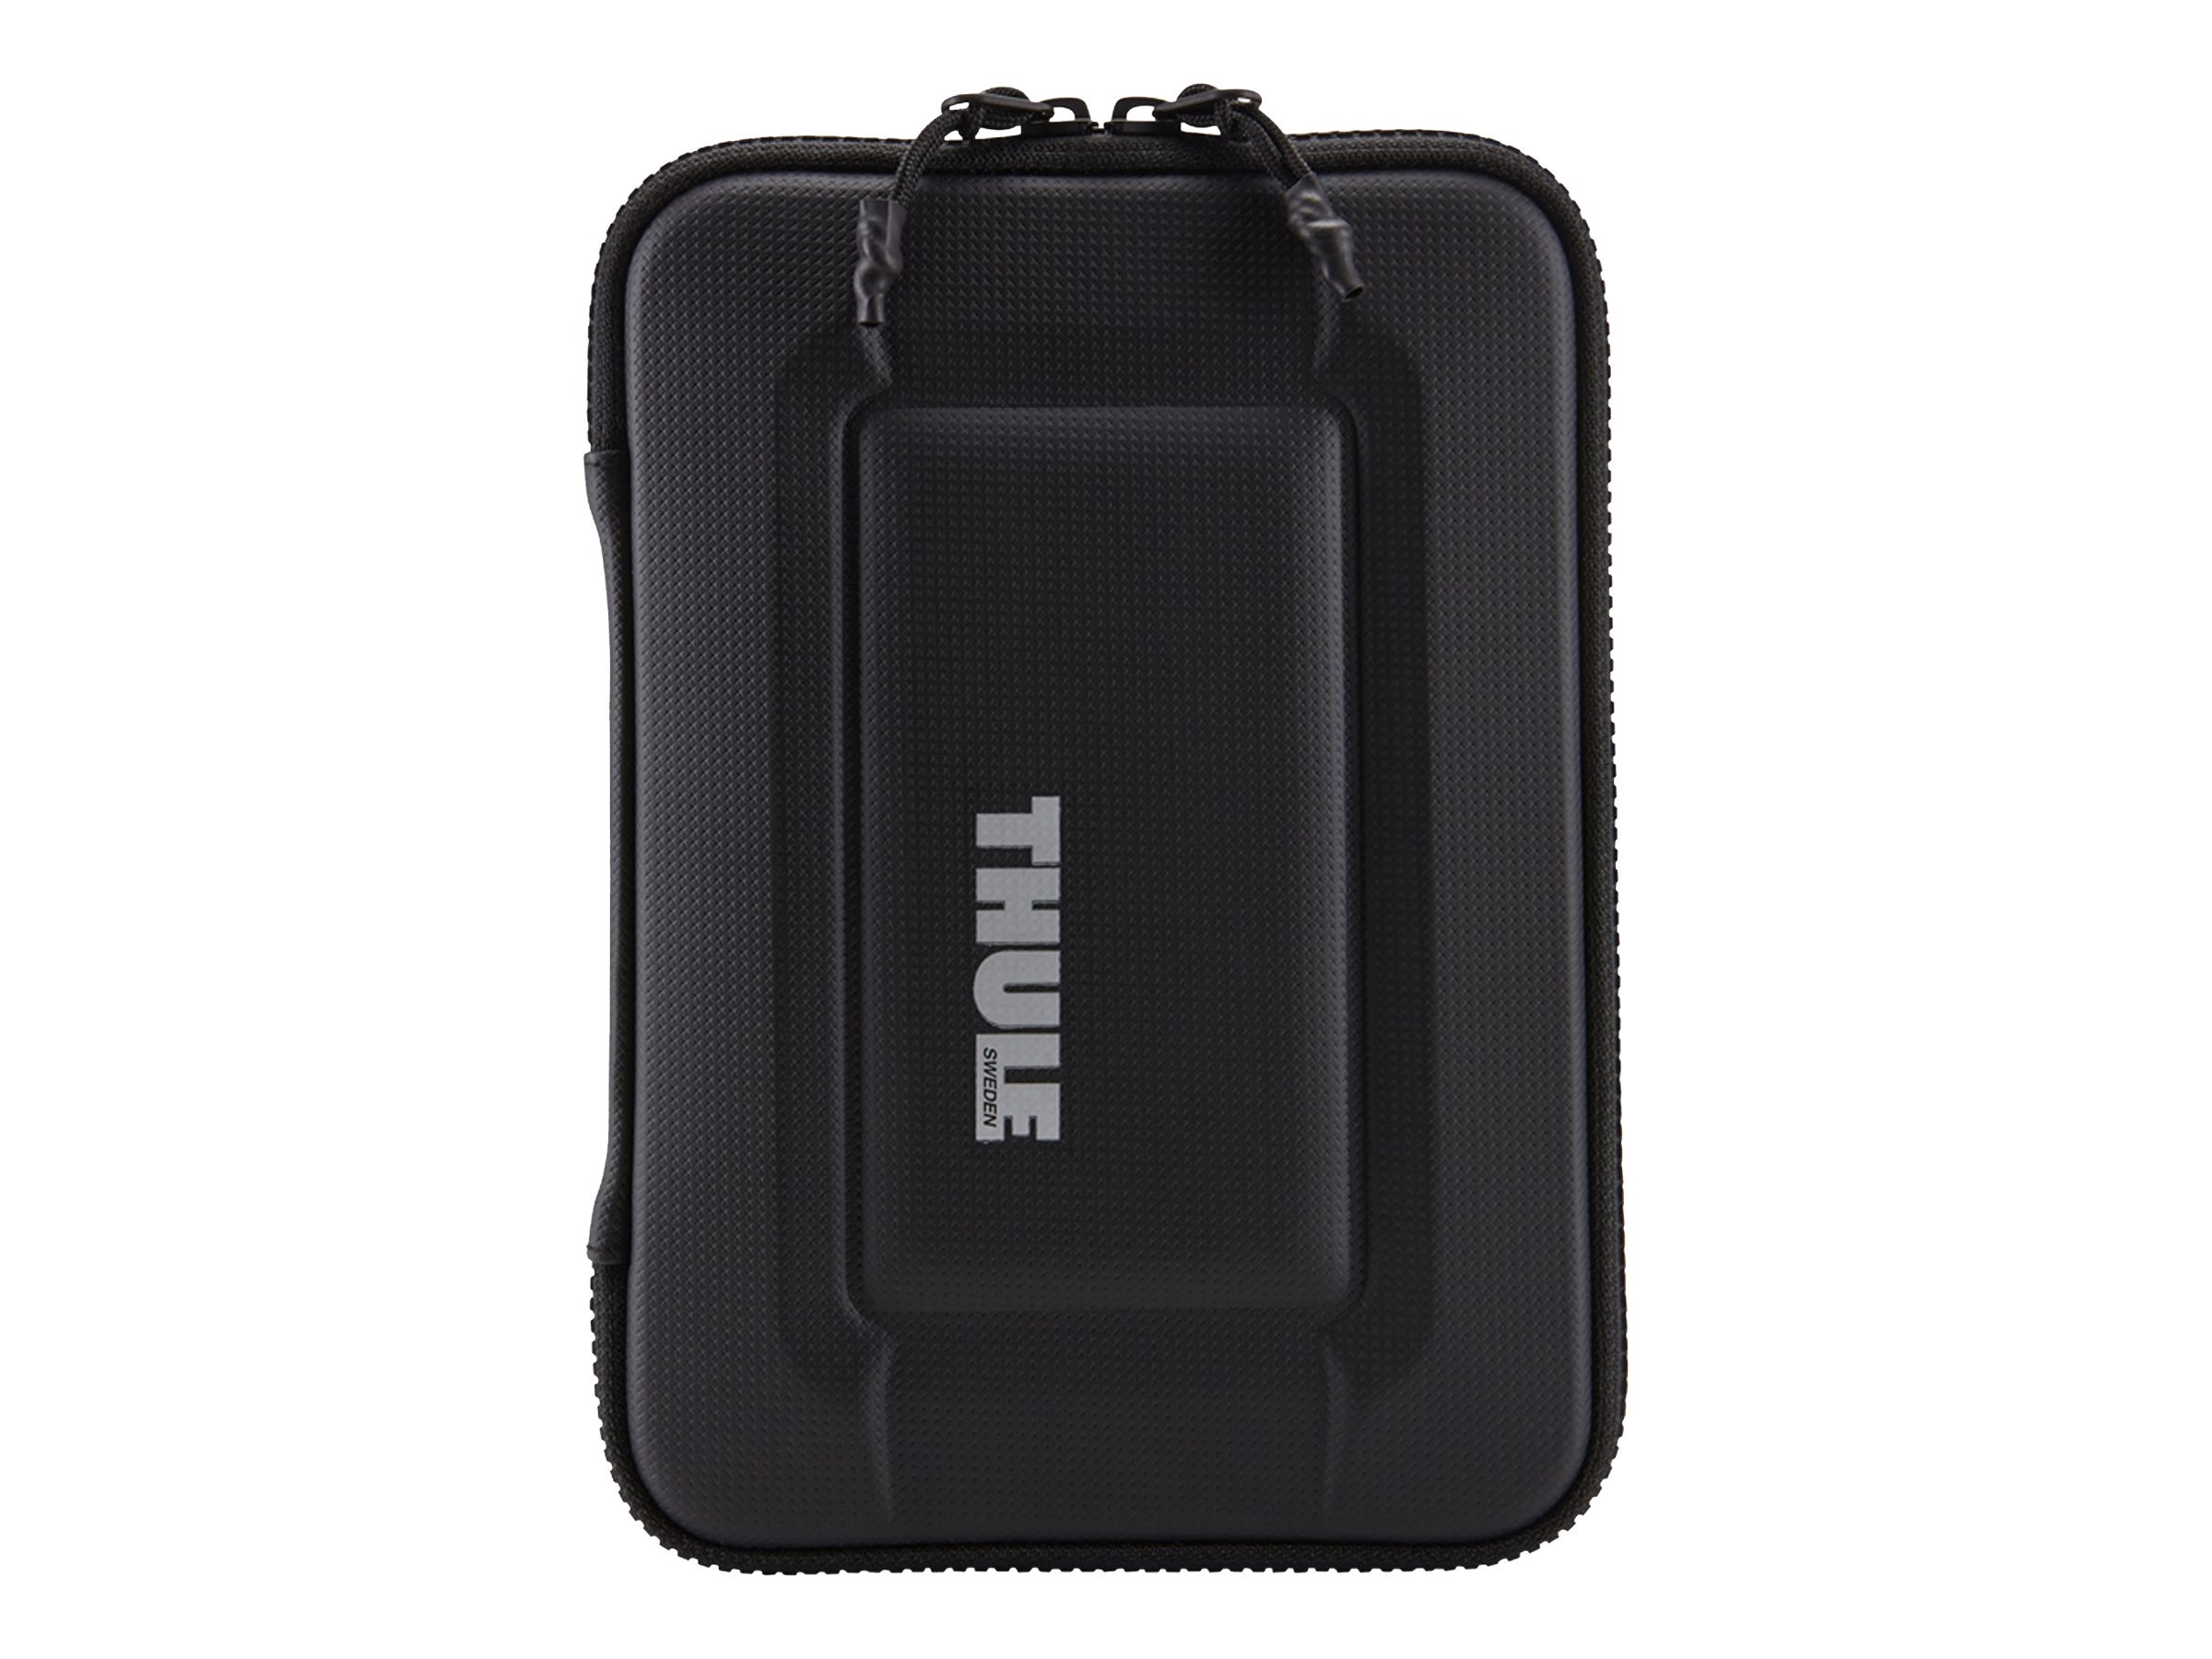 Case Logic Gauntlet 8 iPad Mini Sleeve, TGSE2238BLACK, 19249720, Protective & Dust Covers